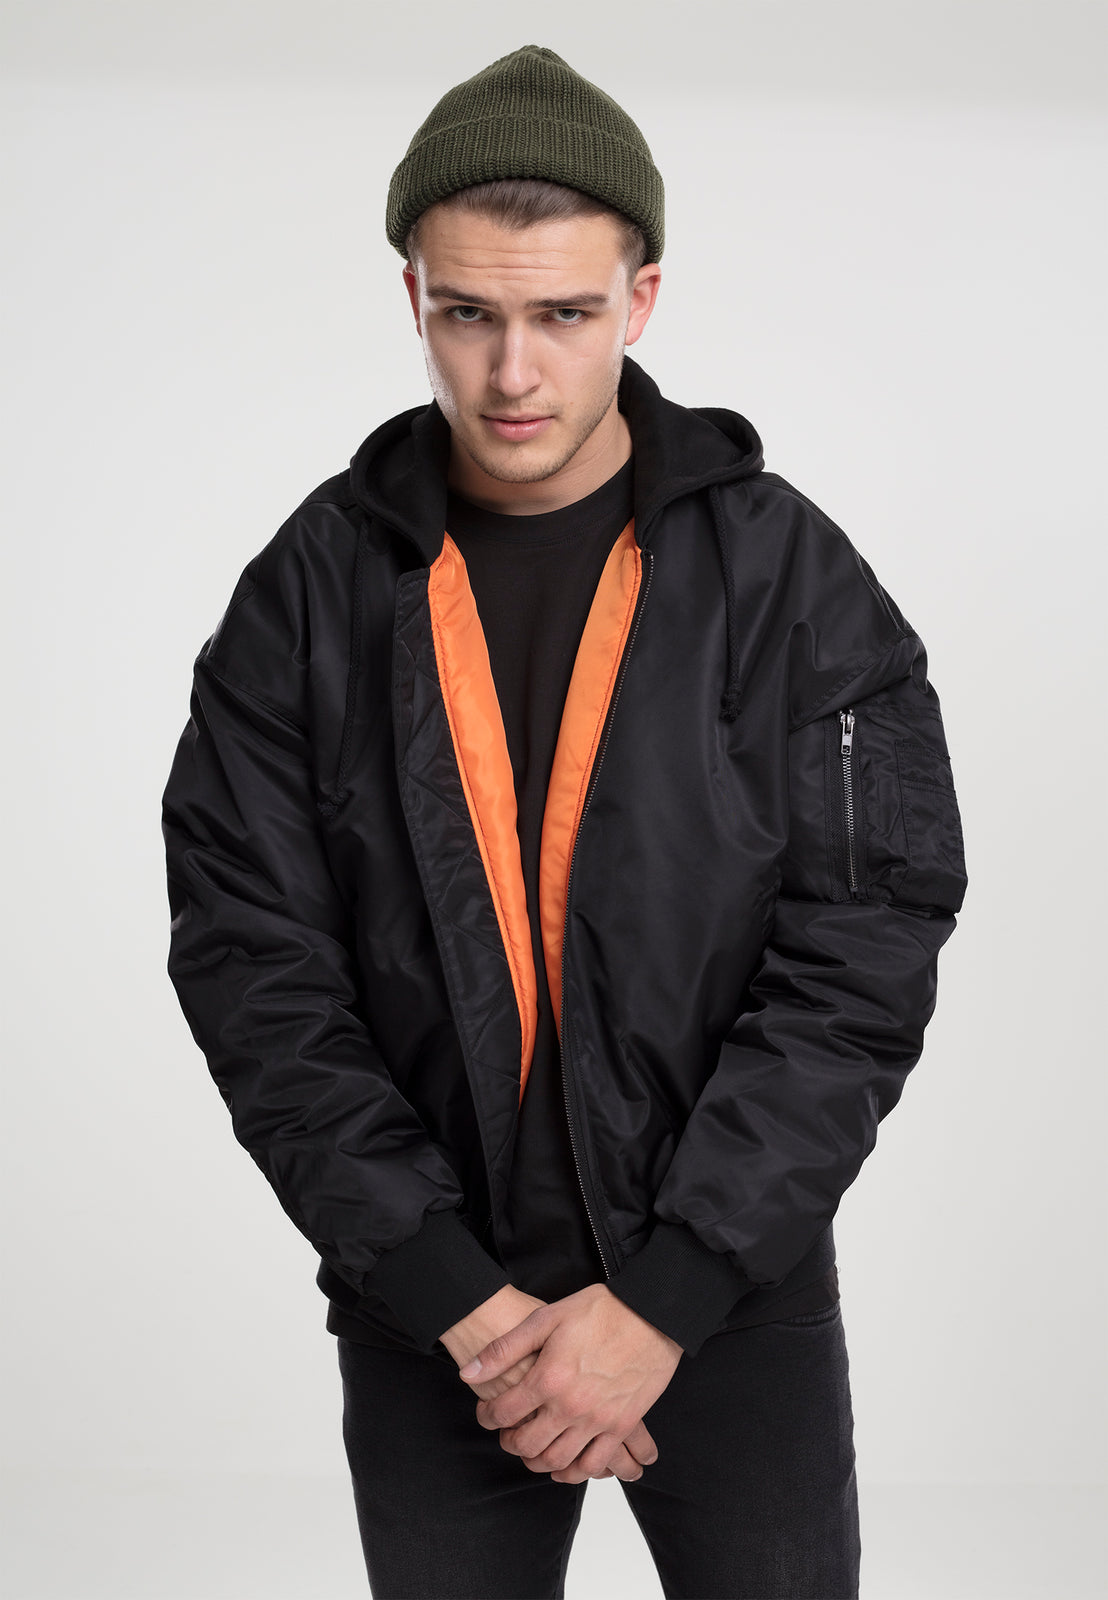 Hooded Oversized Bomber Jacket blk/blk